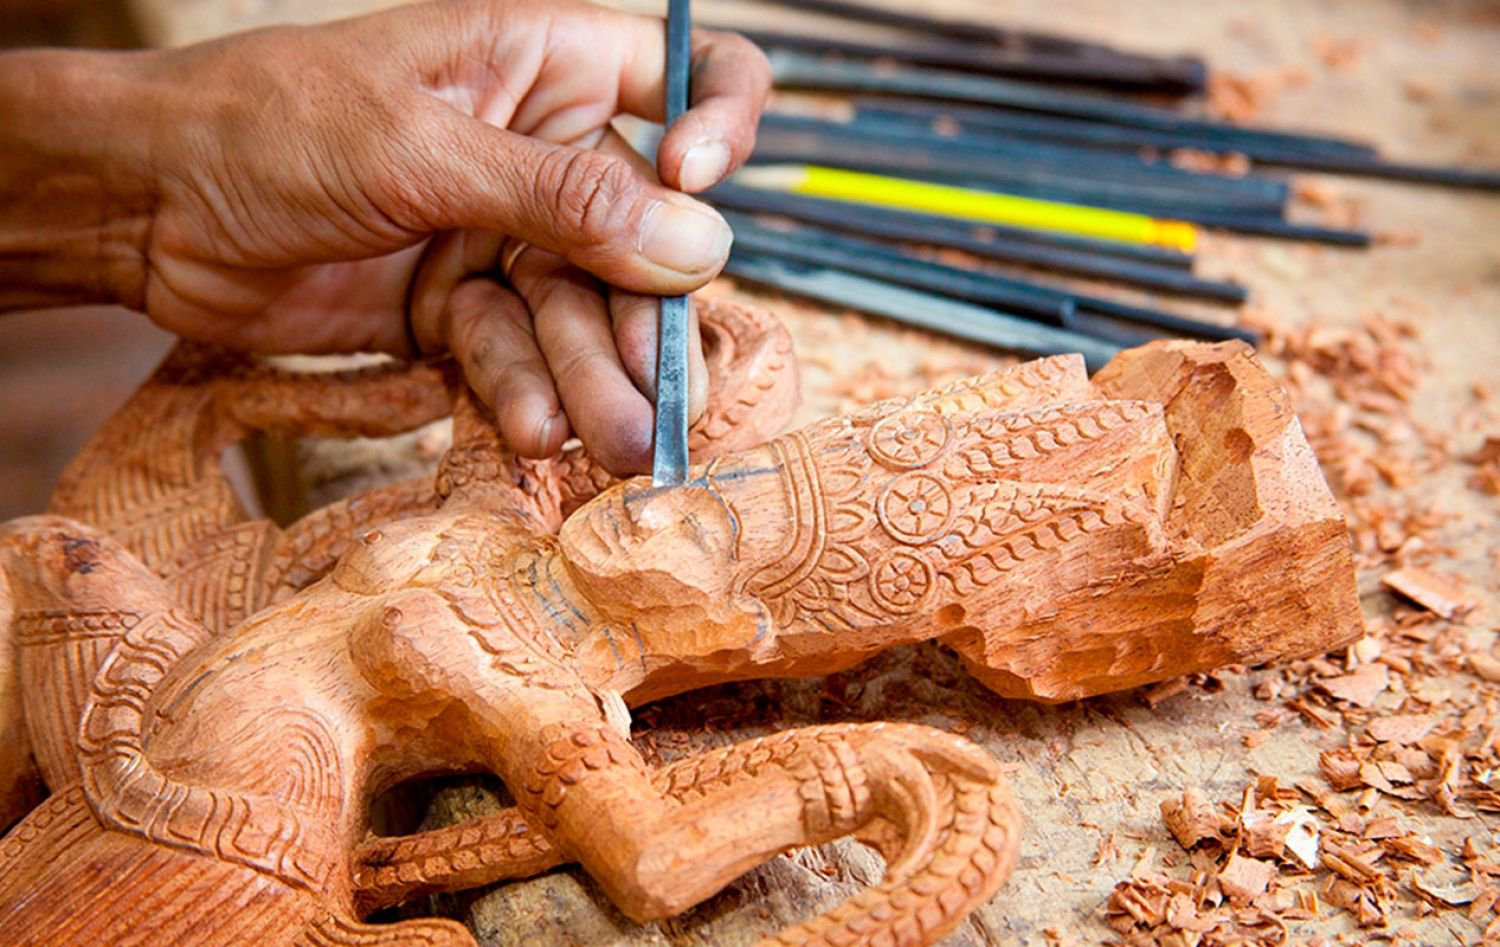 Stone and wood carvings